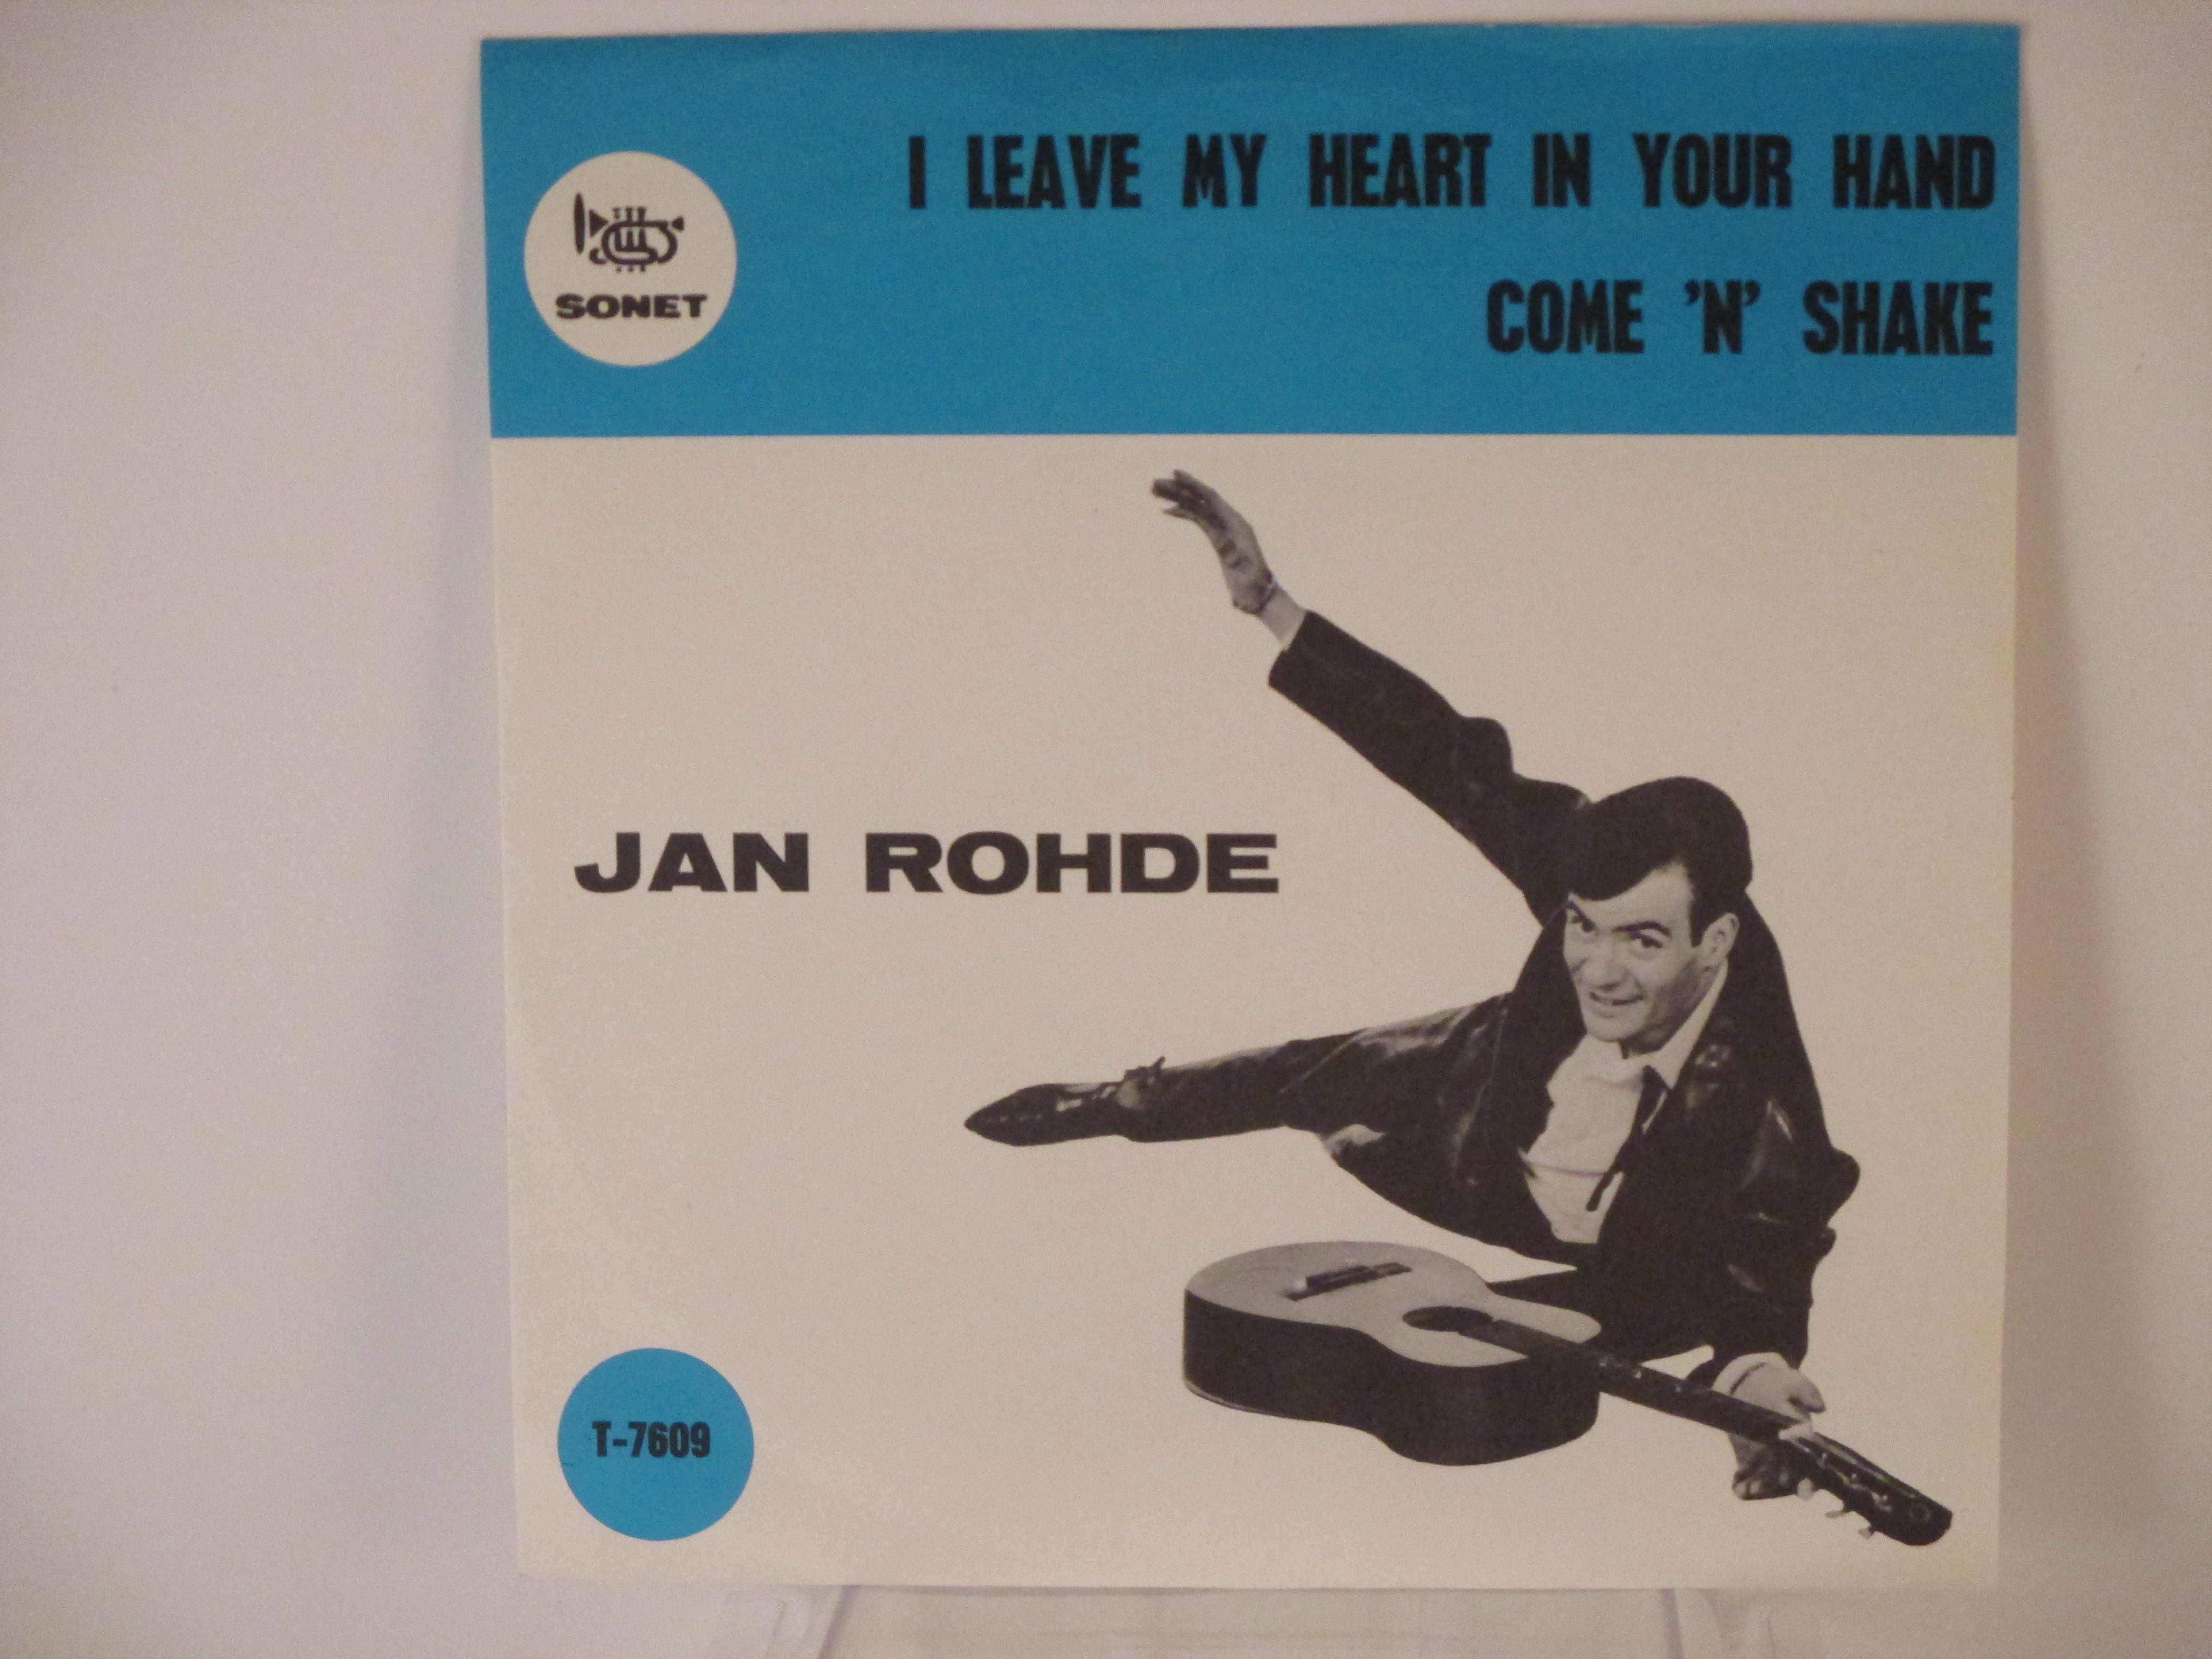 JAN ROHDE : I leave my heart in your hand / Come 'n' shake